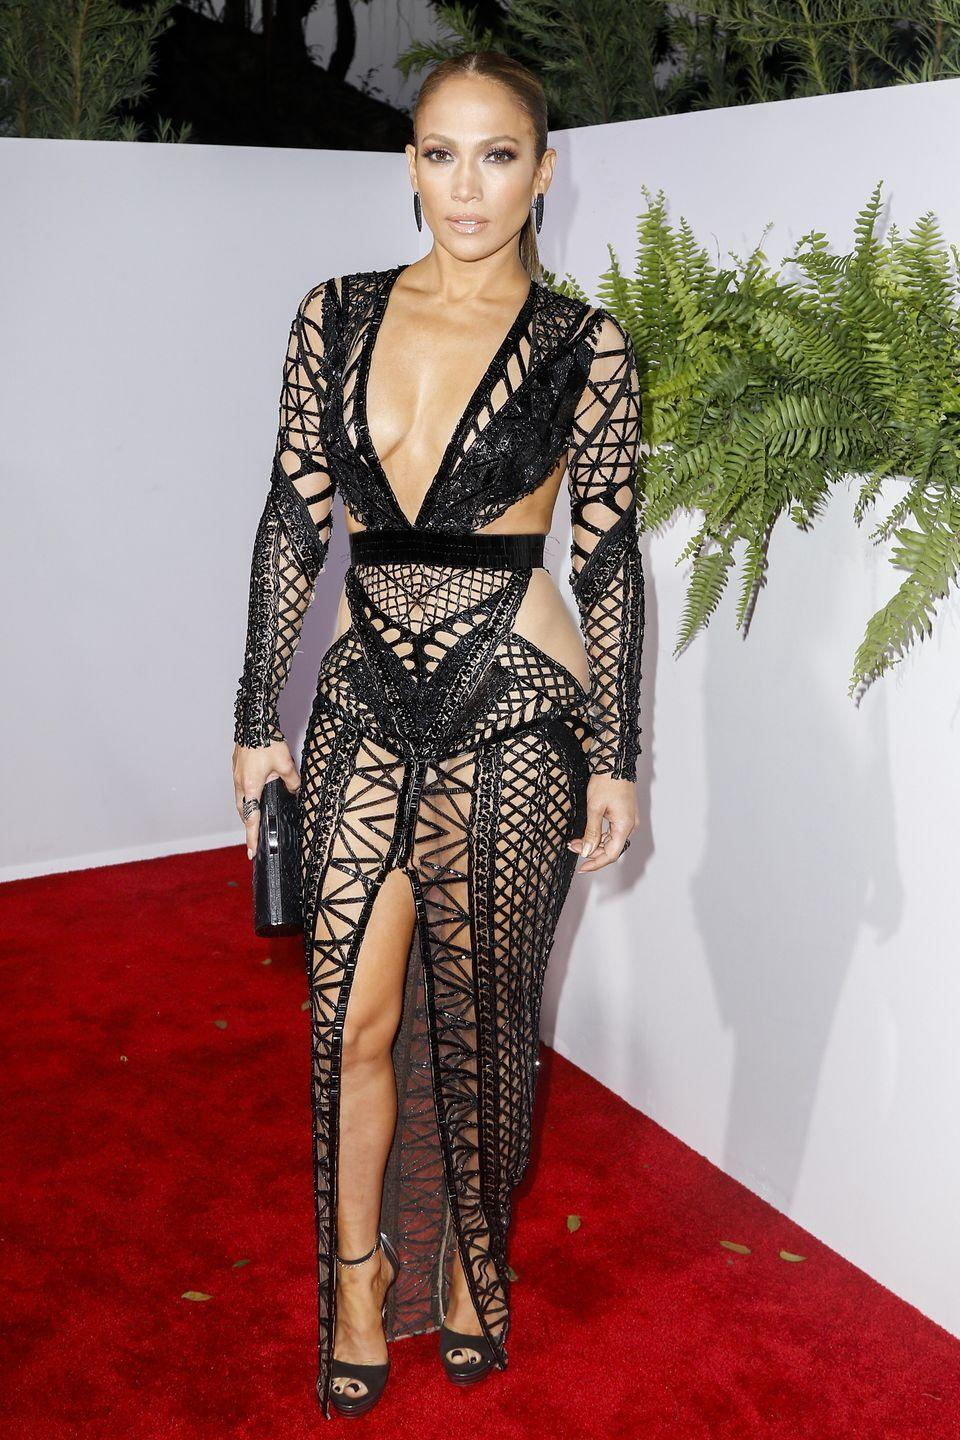 <p>One night, multiple jaw-dropping outfits...I guess that's J.Lo for ya! Here she is still at the Billboard Latin Music Awards in Coral Gables, Florida wearing another plunging dress. But this time it's black, strappy, and perforated all over. </p>